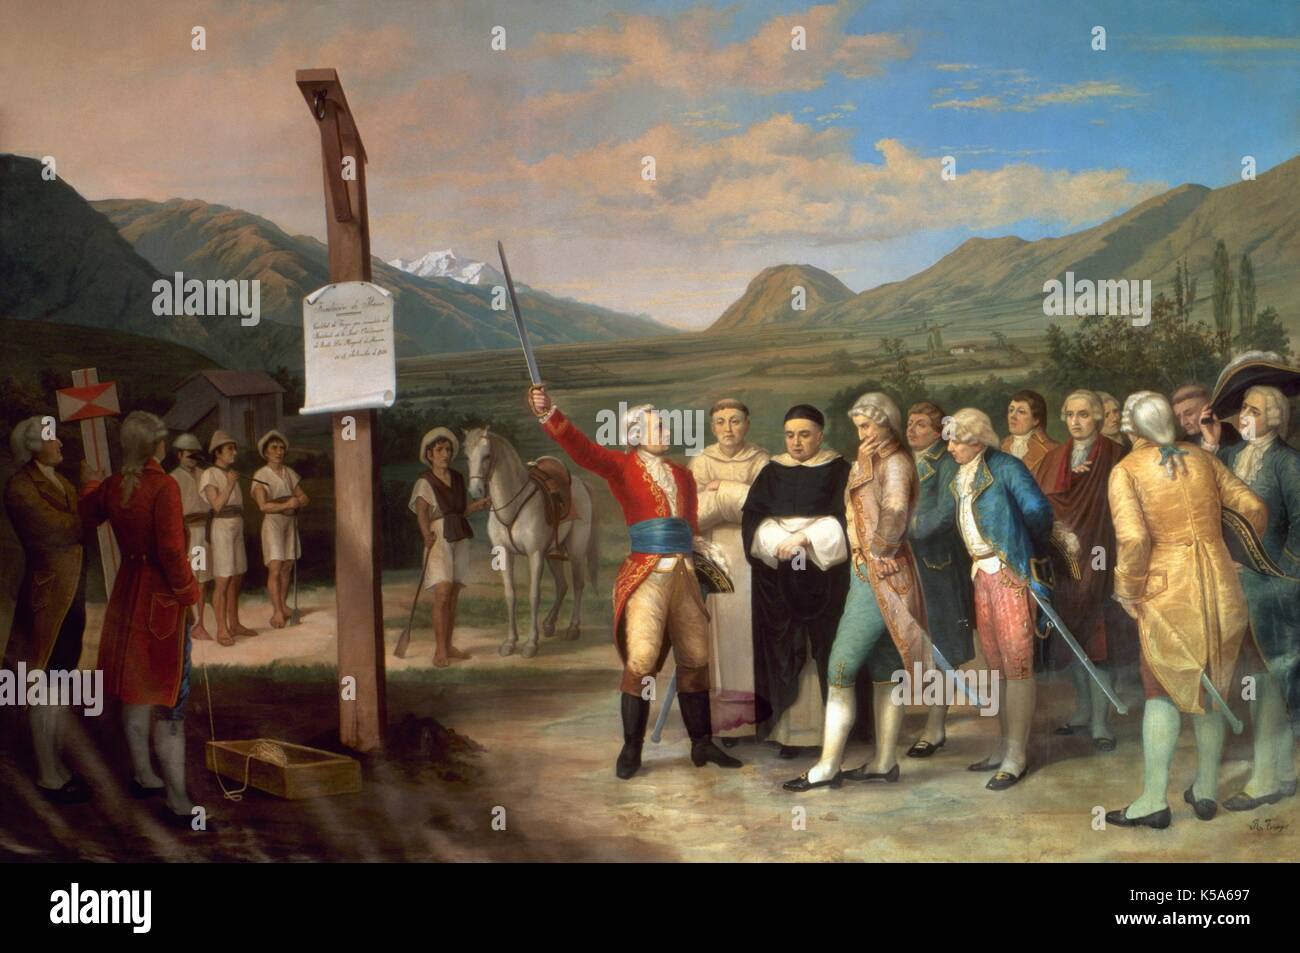 Foundation of San Miguel de Ibarra (now Ibarra), on 28th September 1606, in the Valley of Carangue. north of Ecuador. The Spanish captain Cristobal de Troya, under the orders of the president of The Real Audiencia of Quito, Miguel de Ibarra. Retinue of friars, military and civilians next to a tree that symbolized the Authority and the Justice. Salon Maximo of the town hall of Ibarra (Ecuador). - Stock Image